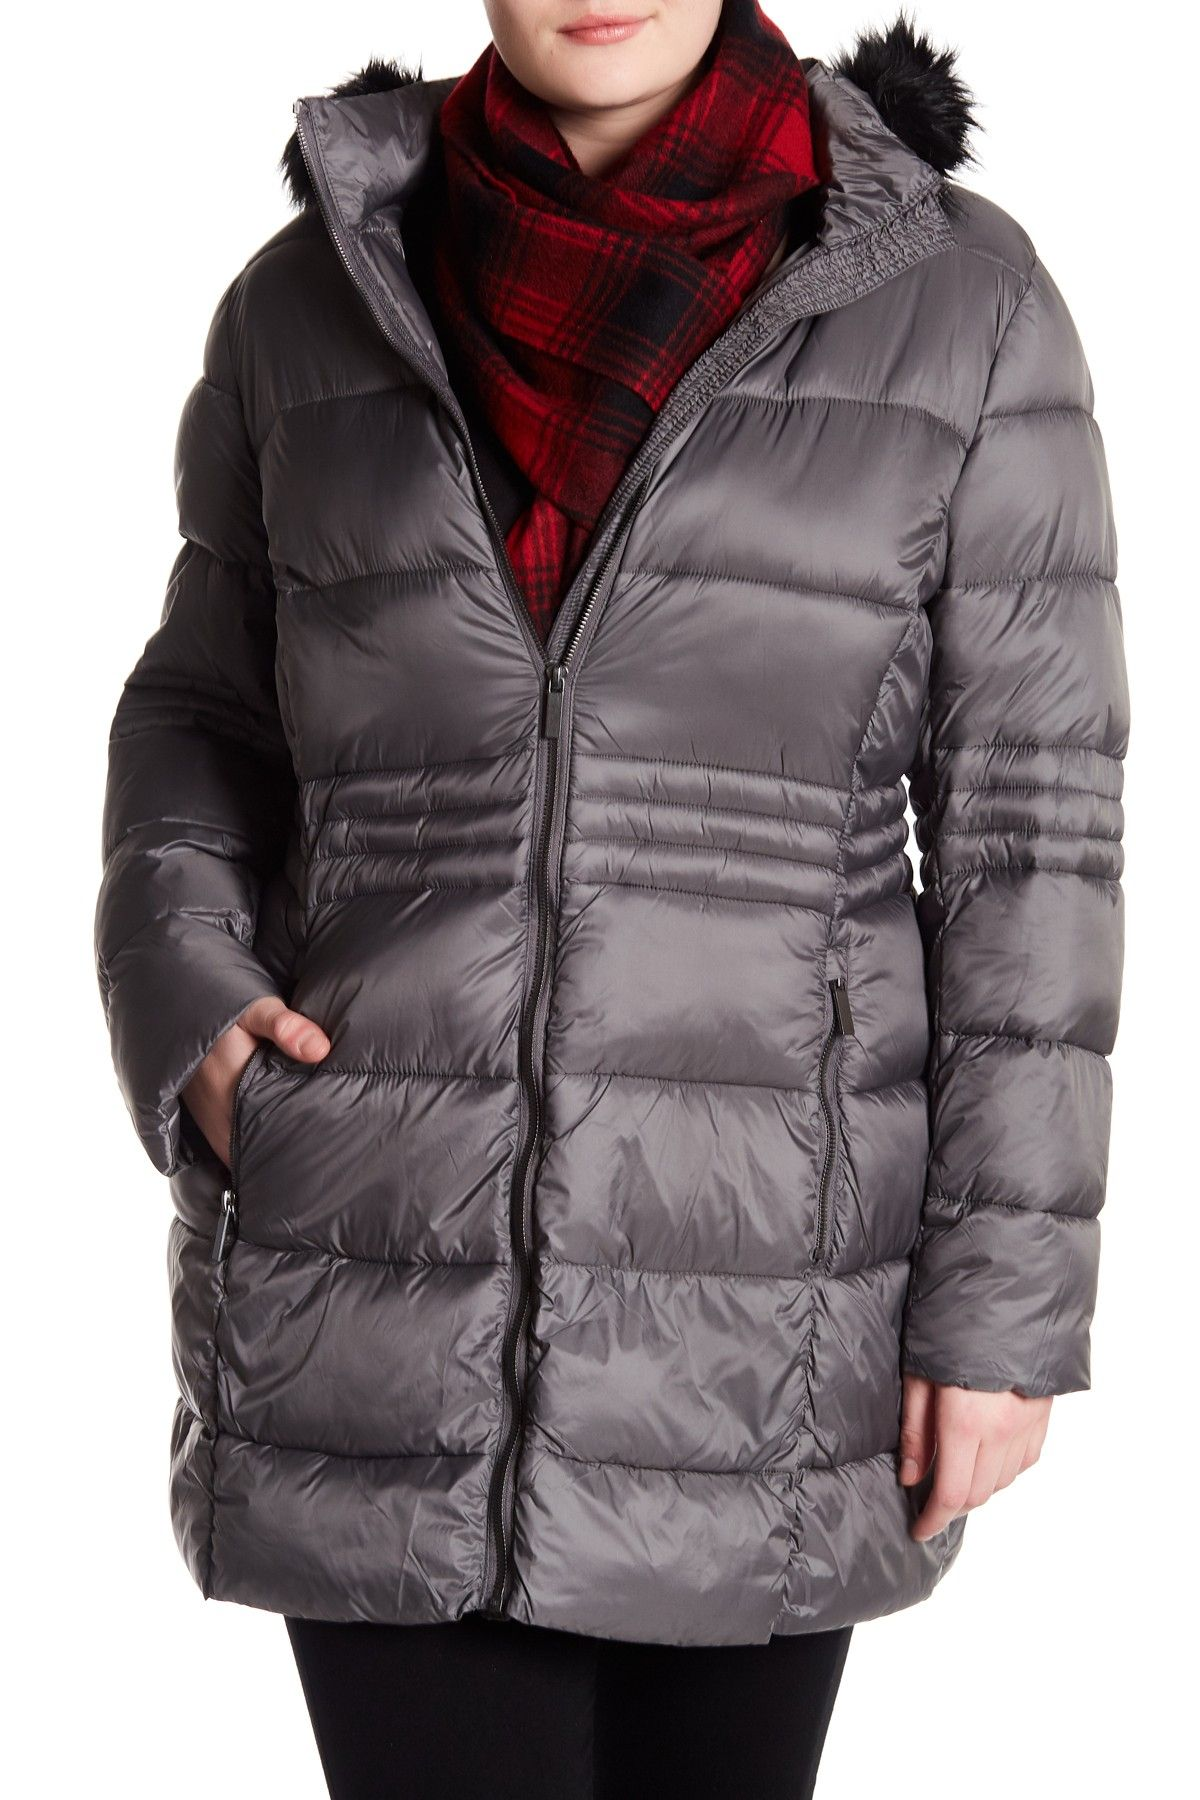 French Connection Full Zip Faux Fur Trim Hooded Puffer Jacket Plus Size Jackets Puffer Jackets Fur Trim [ 1800 x 1200 Pixel ]